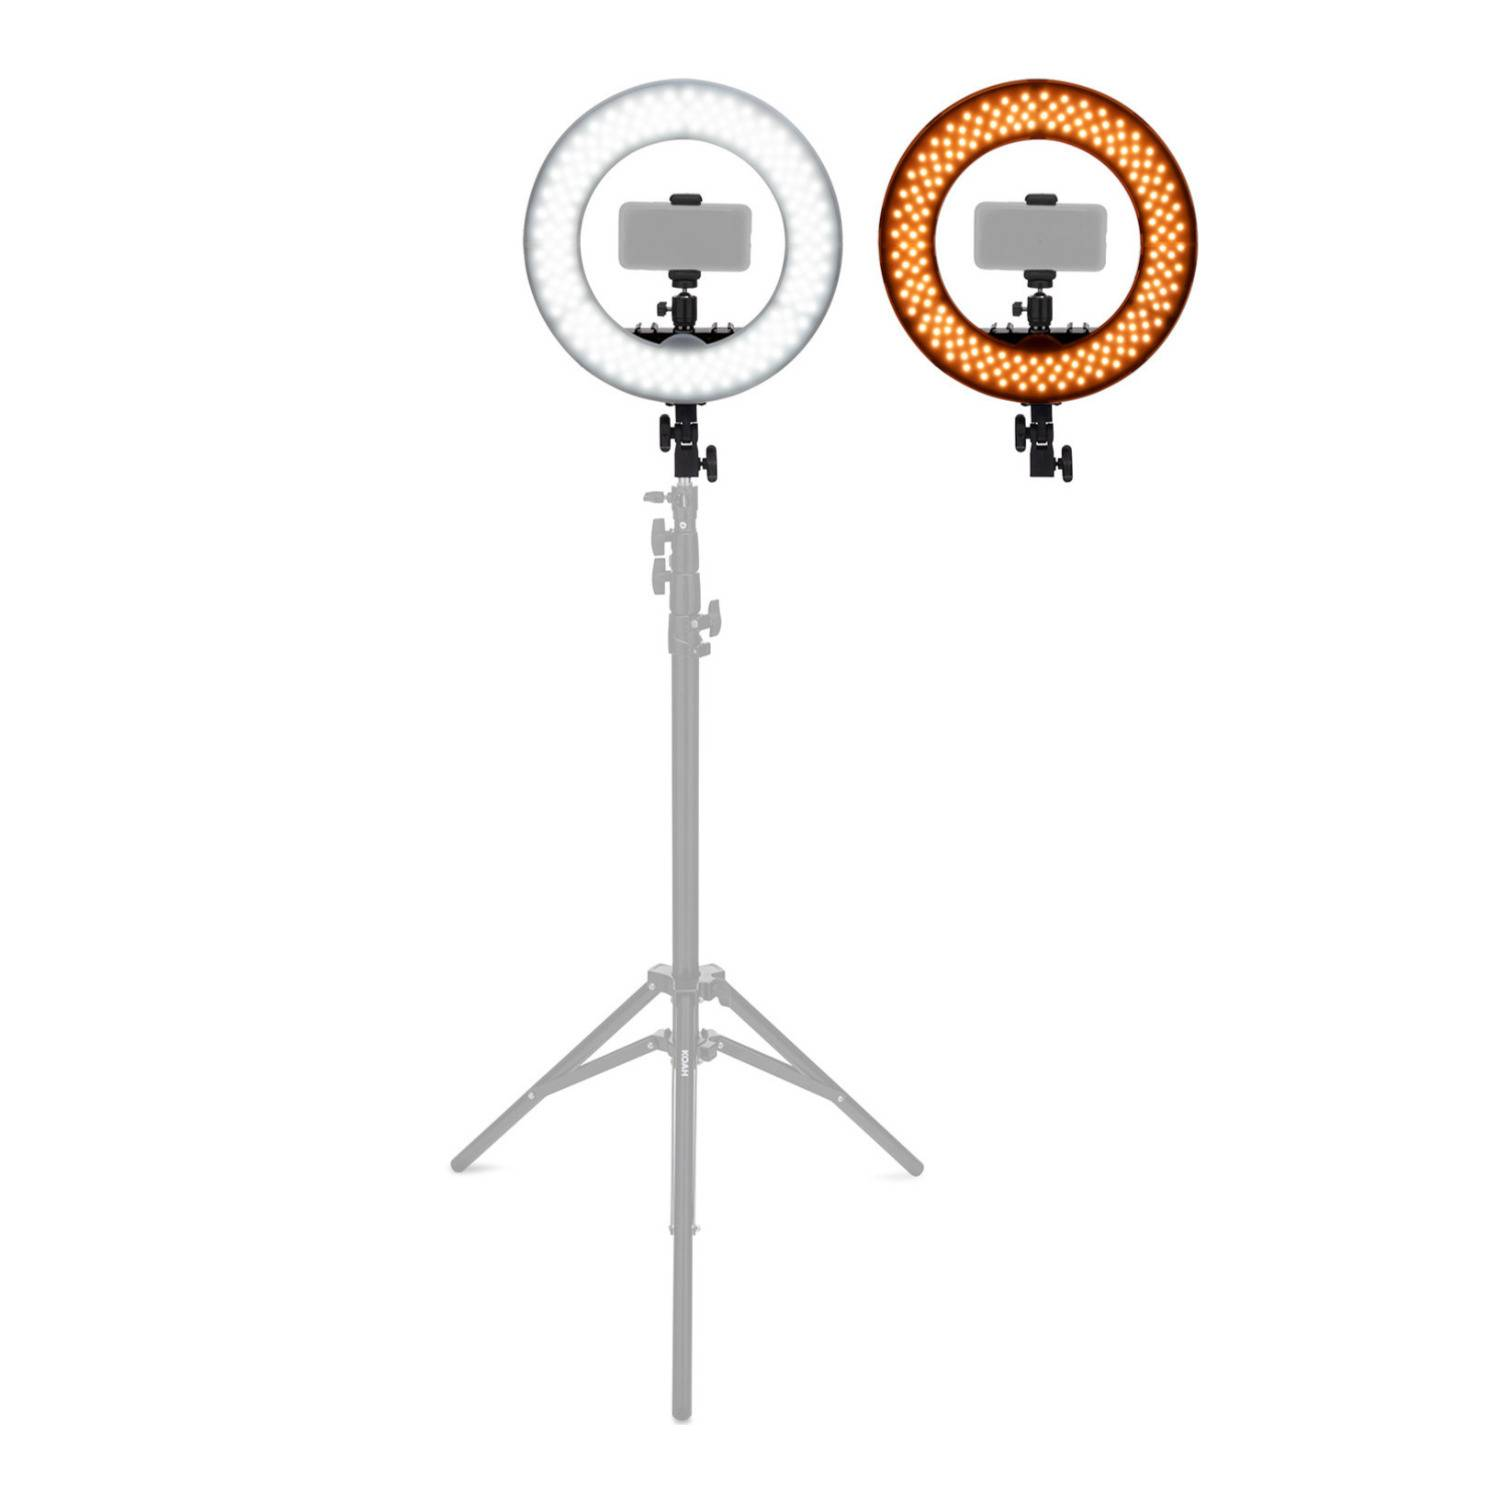 """Koah SOL SPHERE 13"""" 42W Ring Light Kit with Carrying Bag and Smartphone Holder for YouTube, Selfies and Content Creation"""